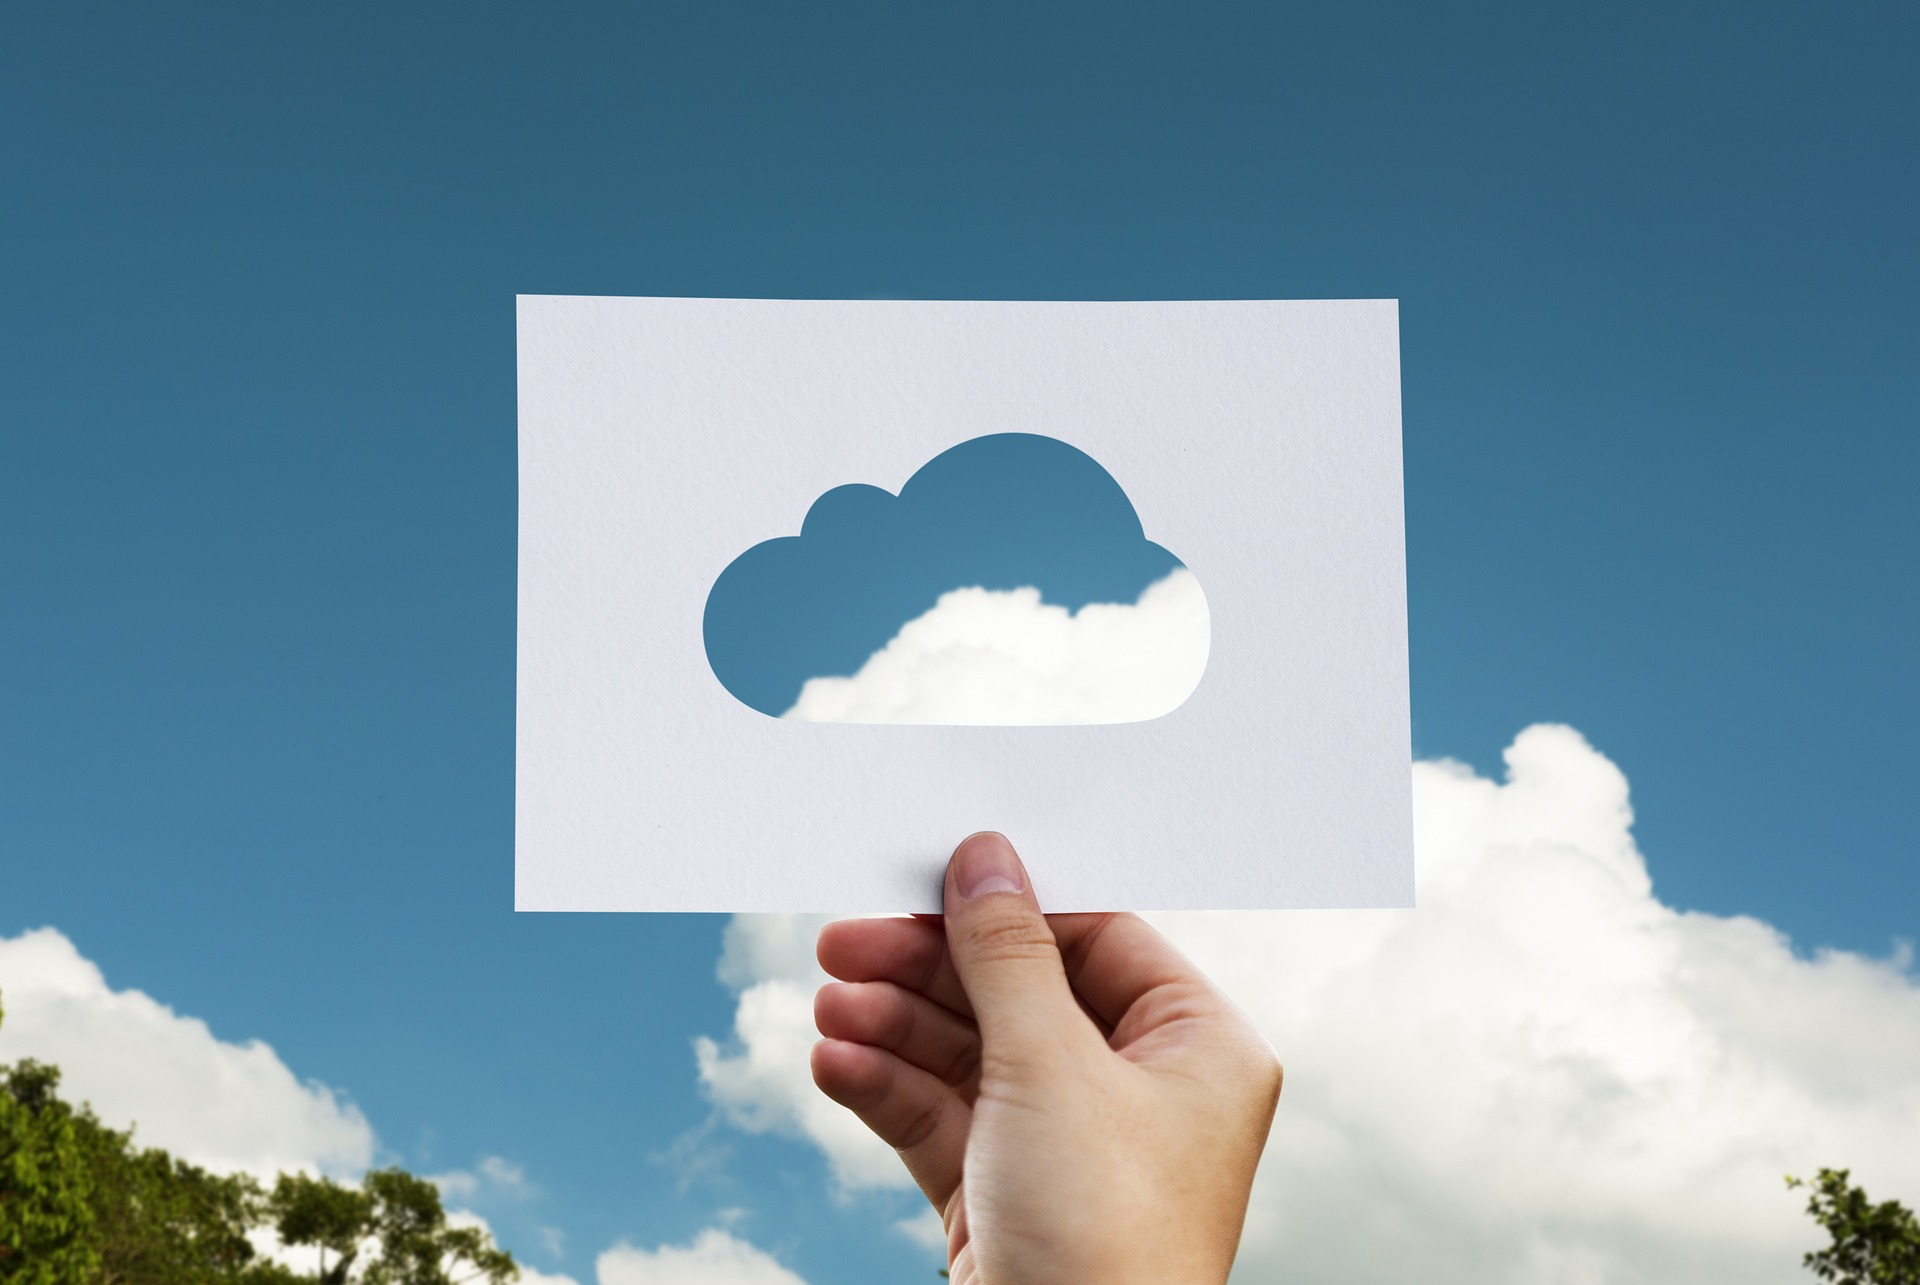 cloud 2104829 1920 1 - Entre nubes: el futuro del cloud computing